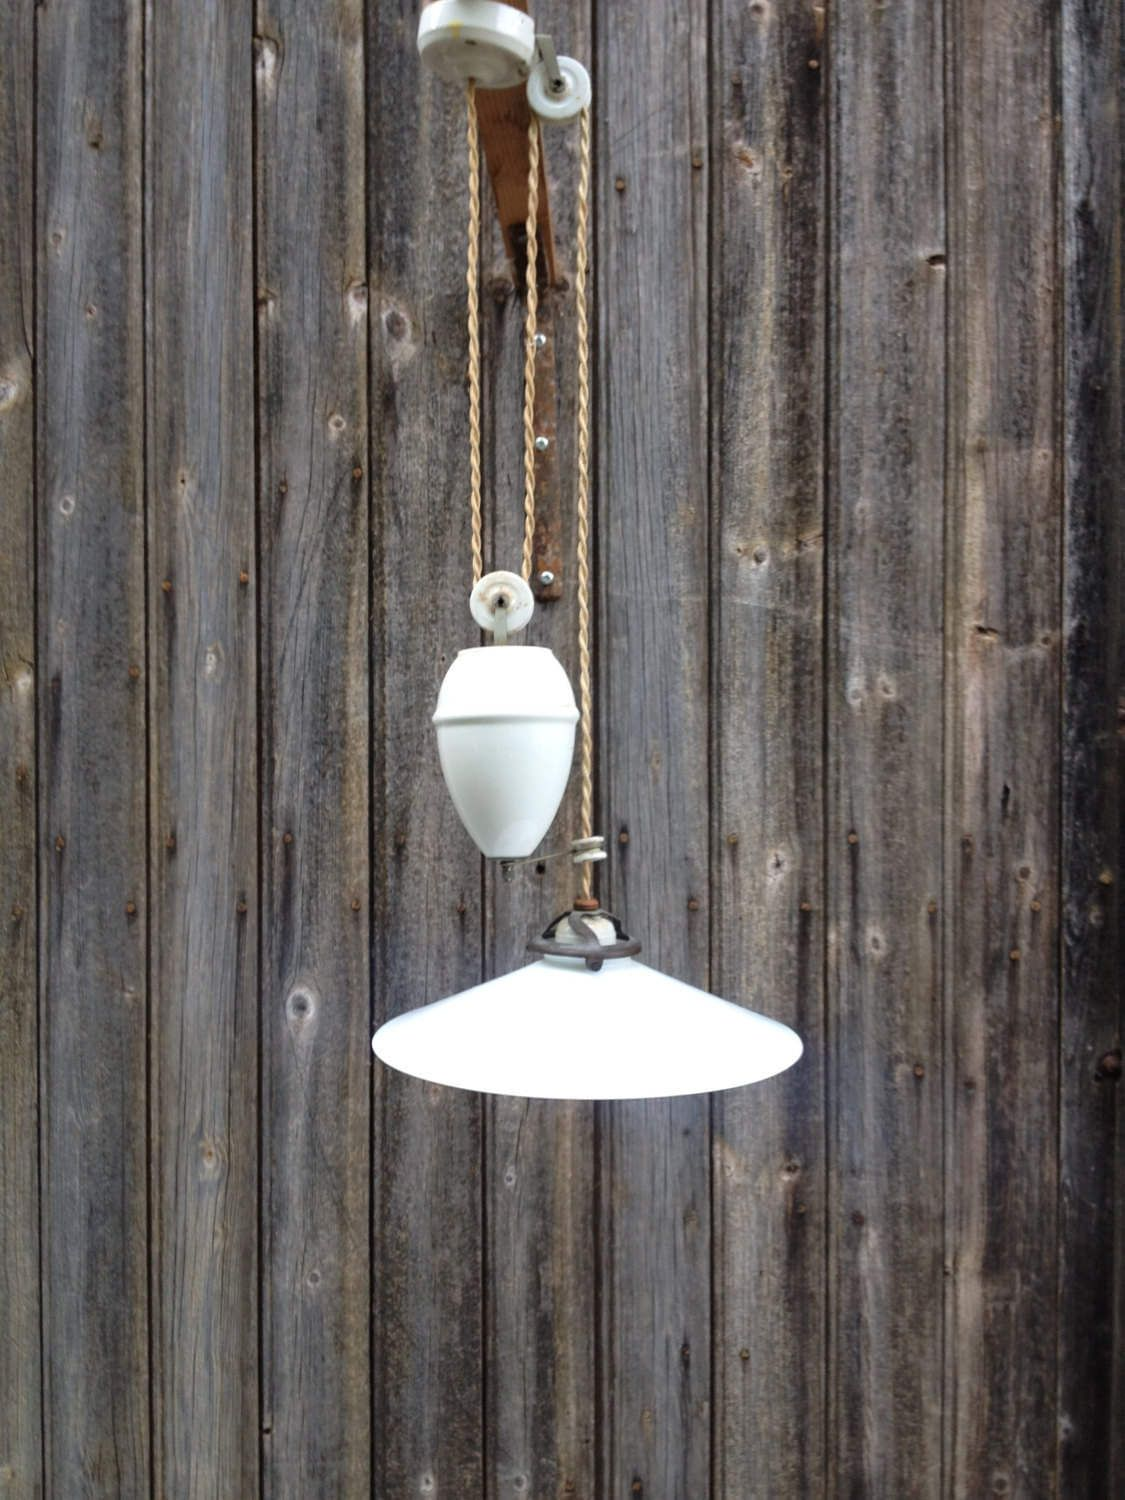 Lampe Opaline Blanche French Vintage Ceiling Light Of 1920 Kitchen Light With Levelling